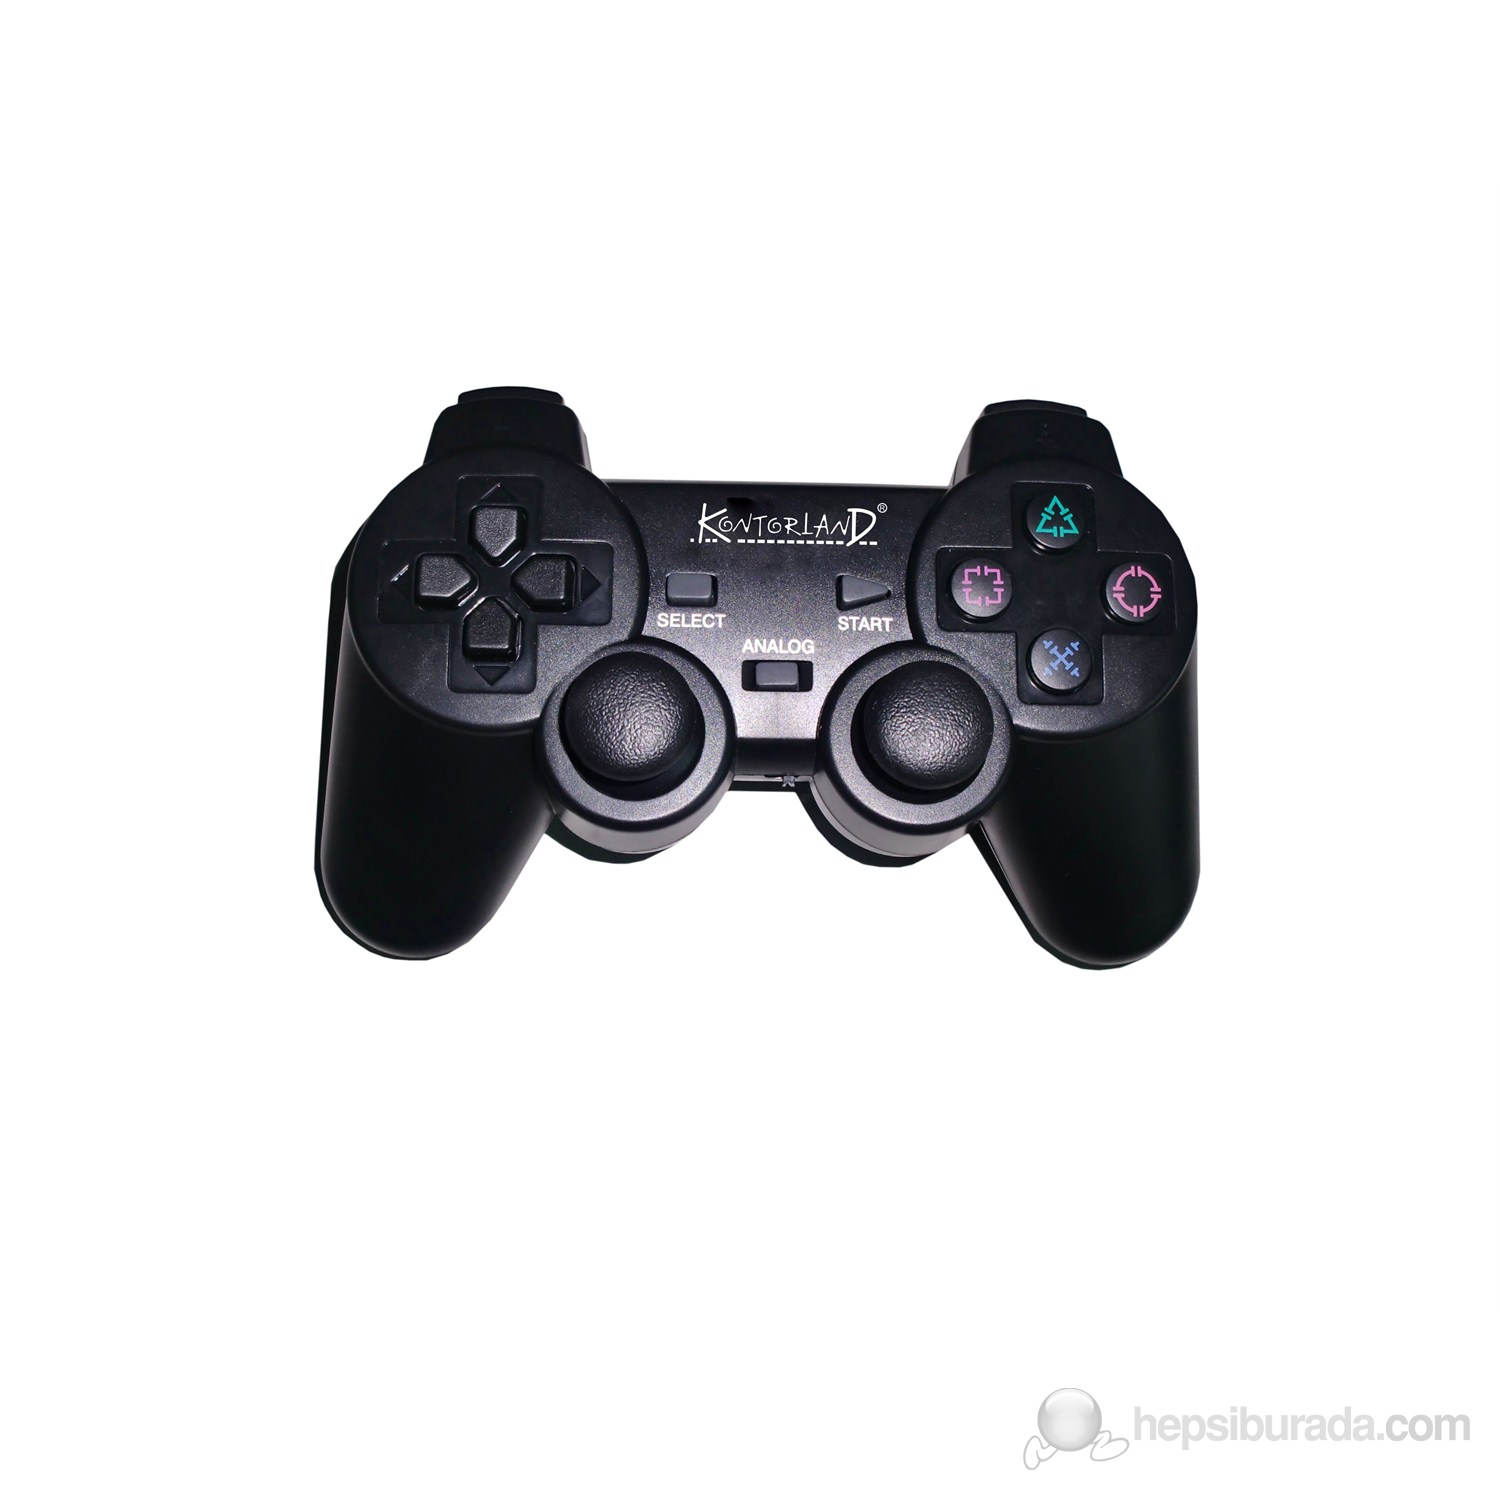 Kontorland PS-3002 2.4 Hz Wireless Analog Game Pad PS3/PS2/PC USB